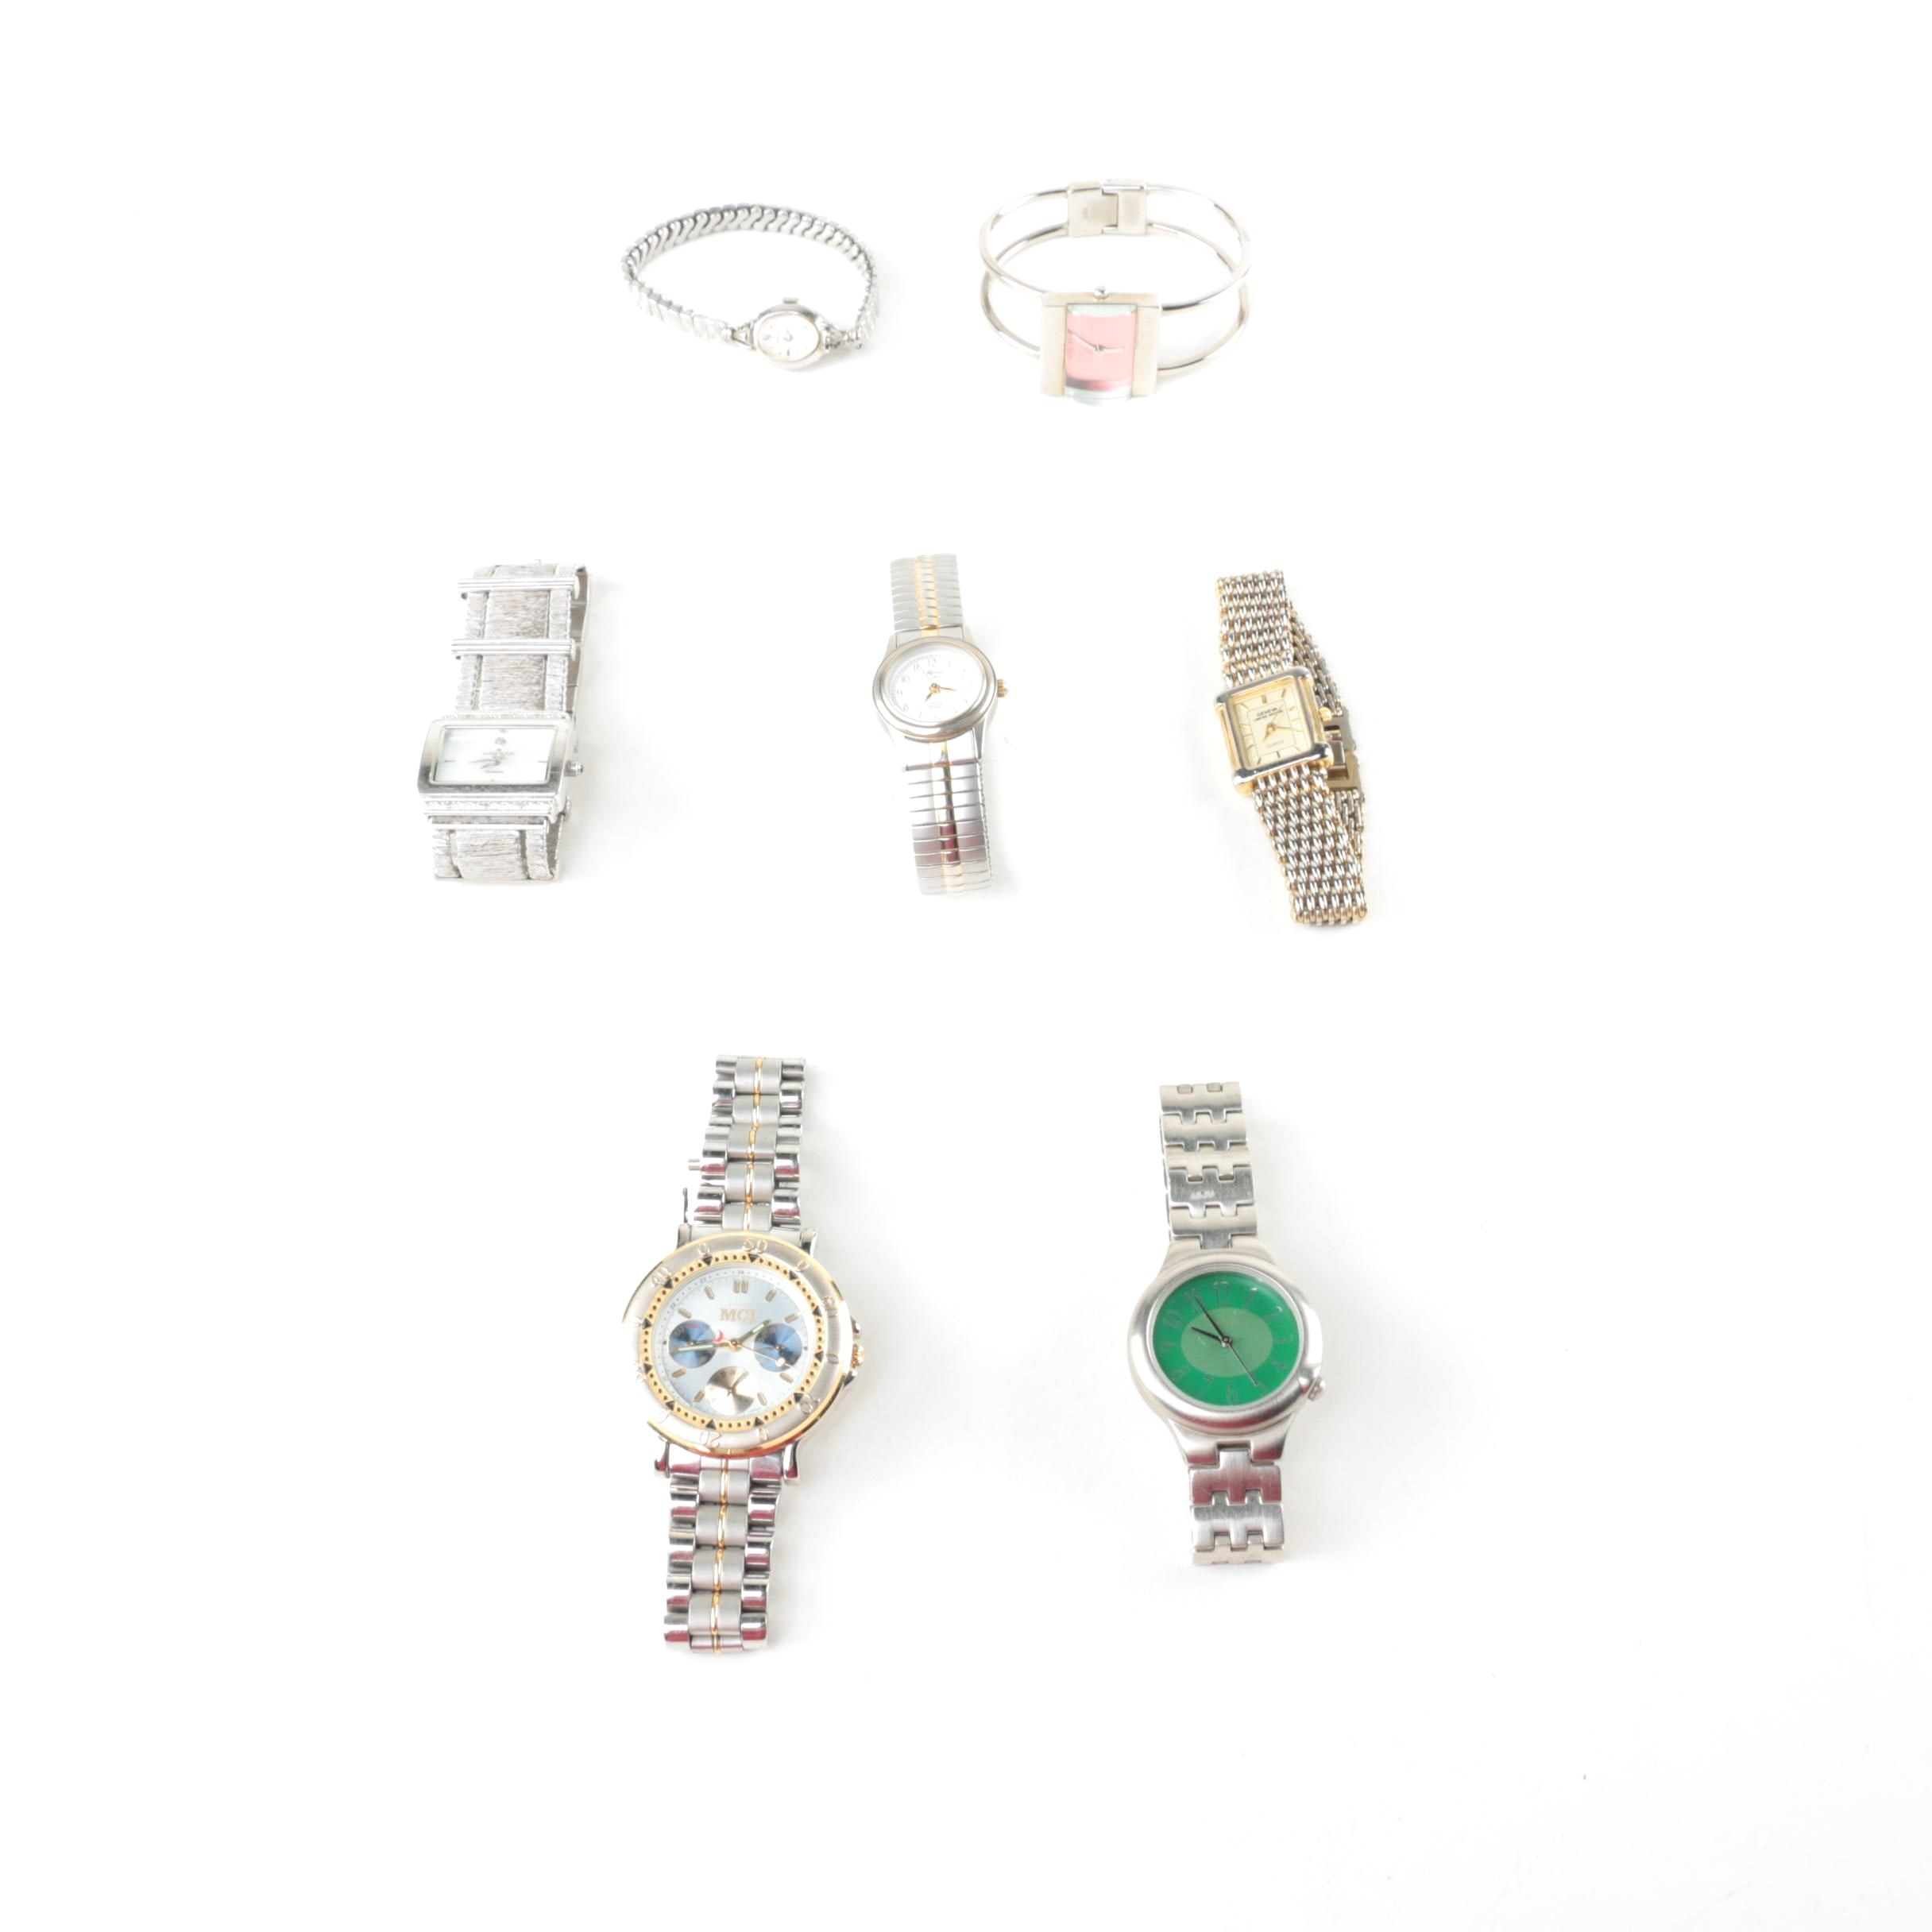 Silver Toned Watches Including Geneva, Anne Klein, and Croton